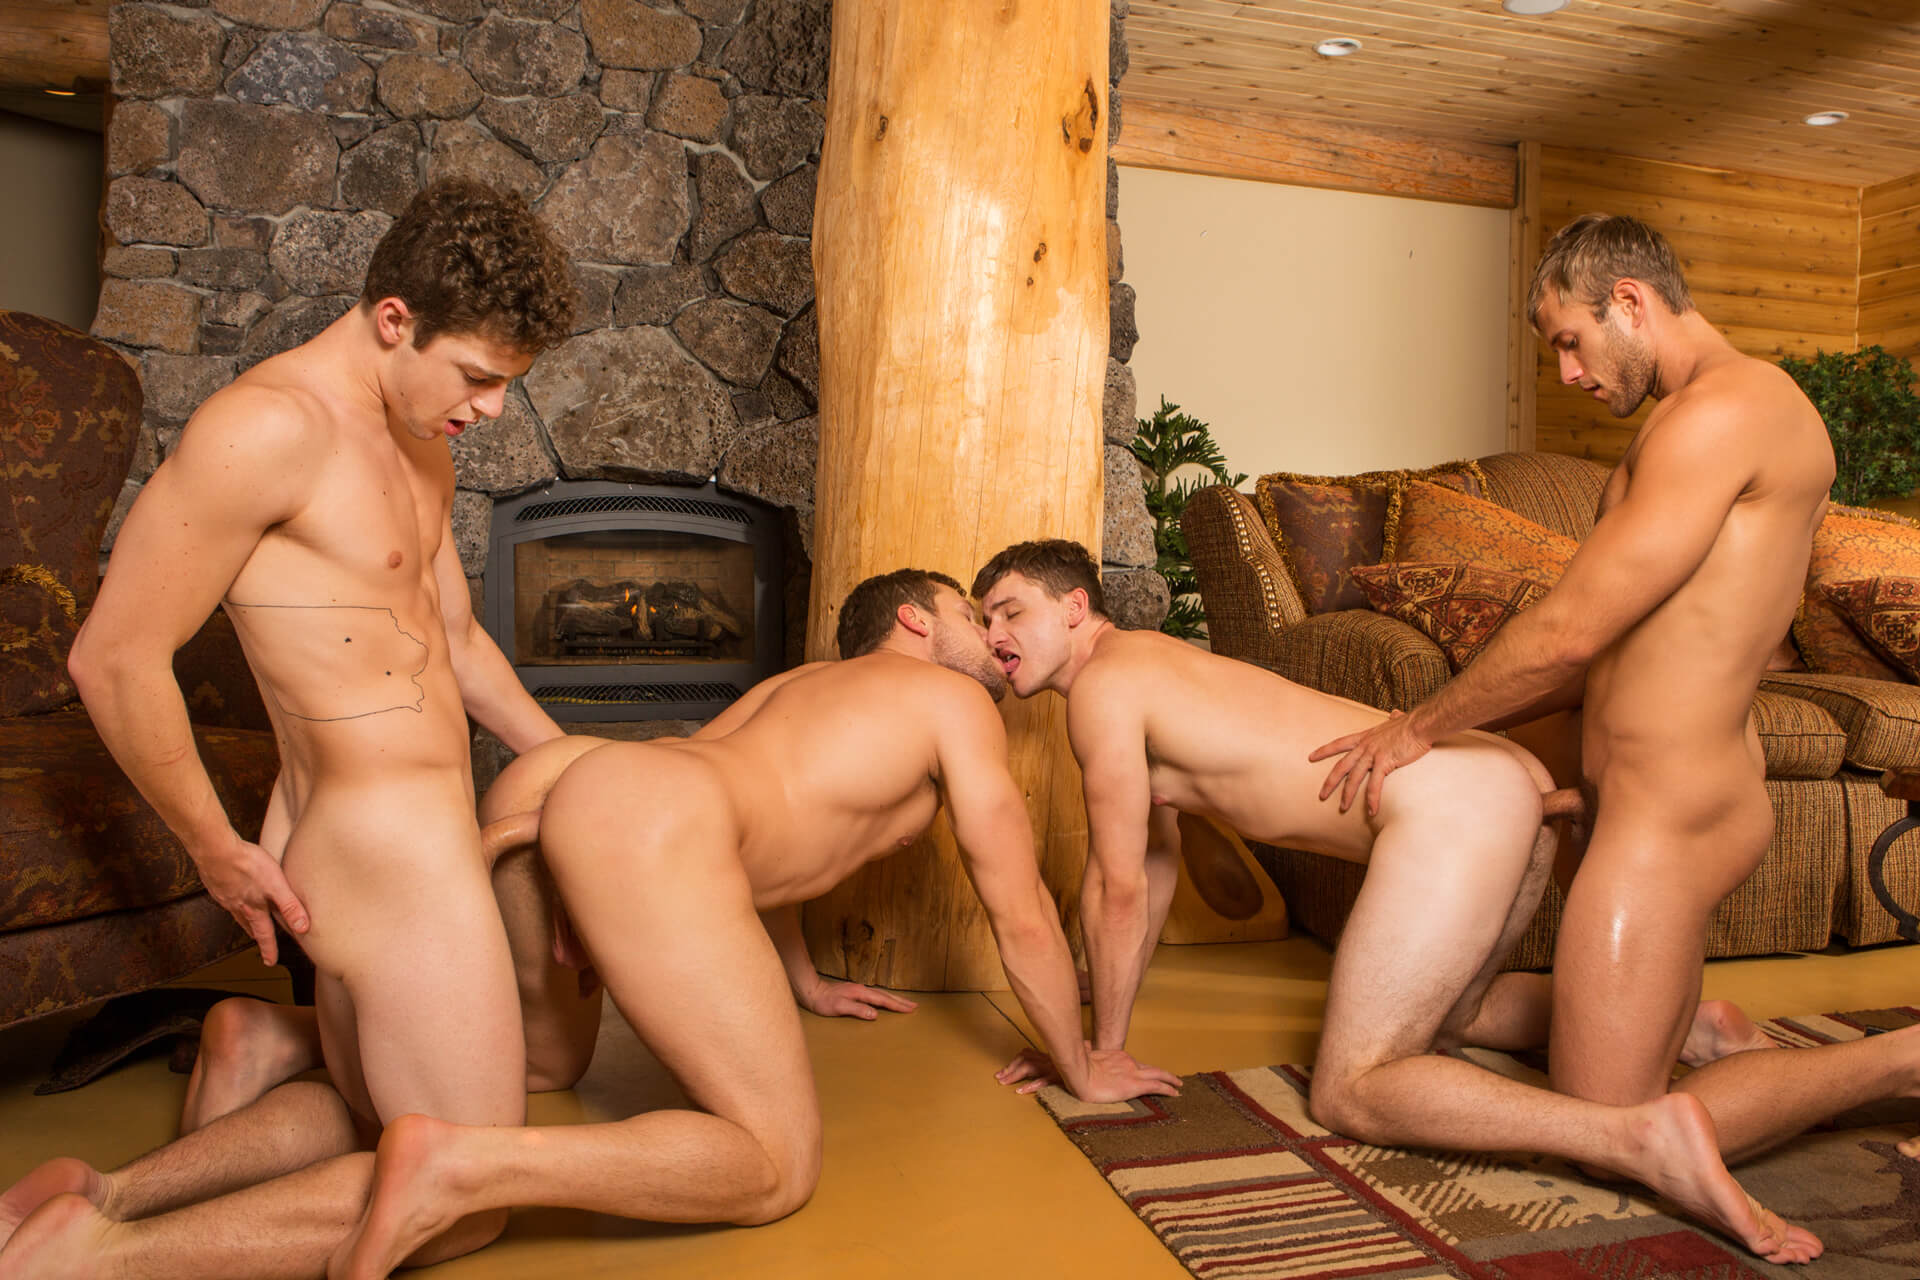 sean cody winter getaway day 8 bareback foursome atticus blake brendan robbie gay porn blog image 15